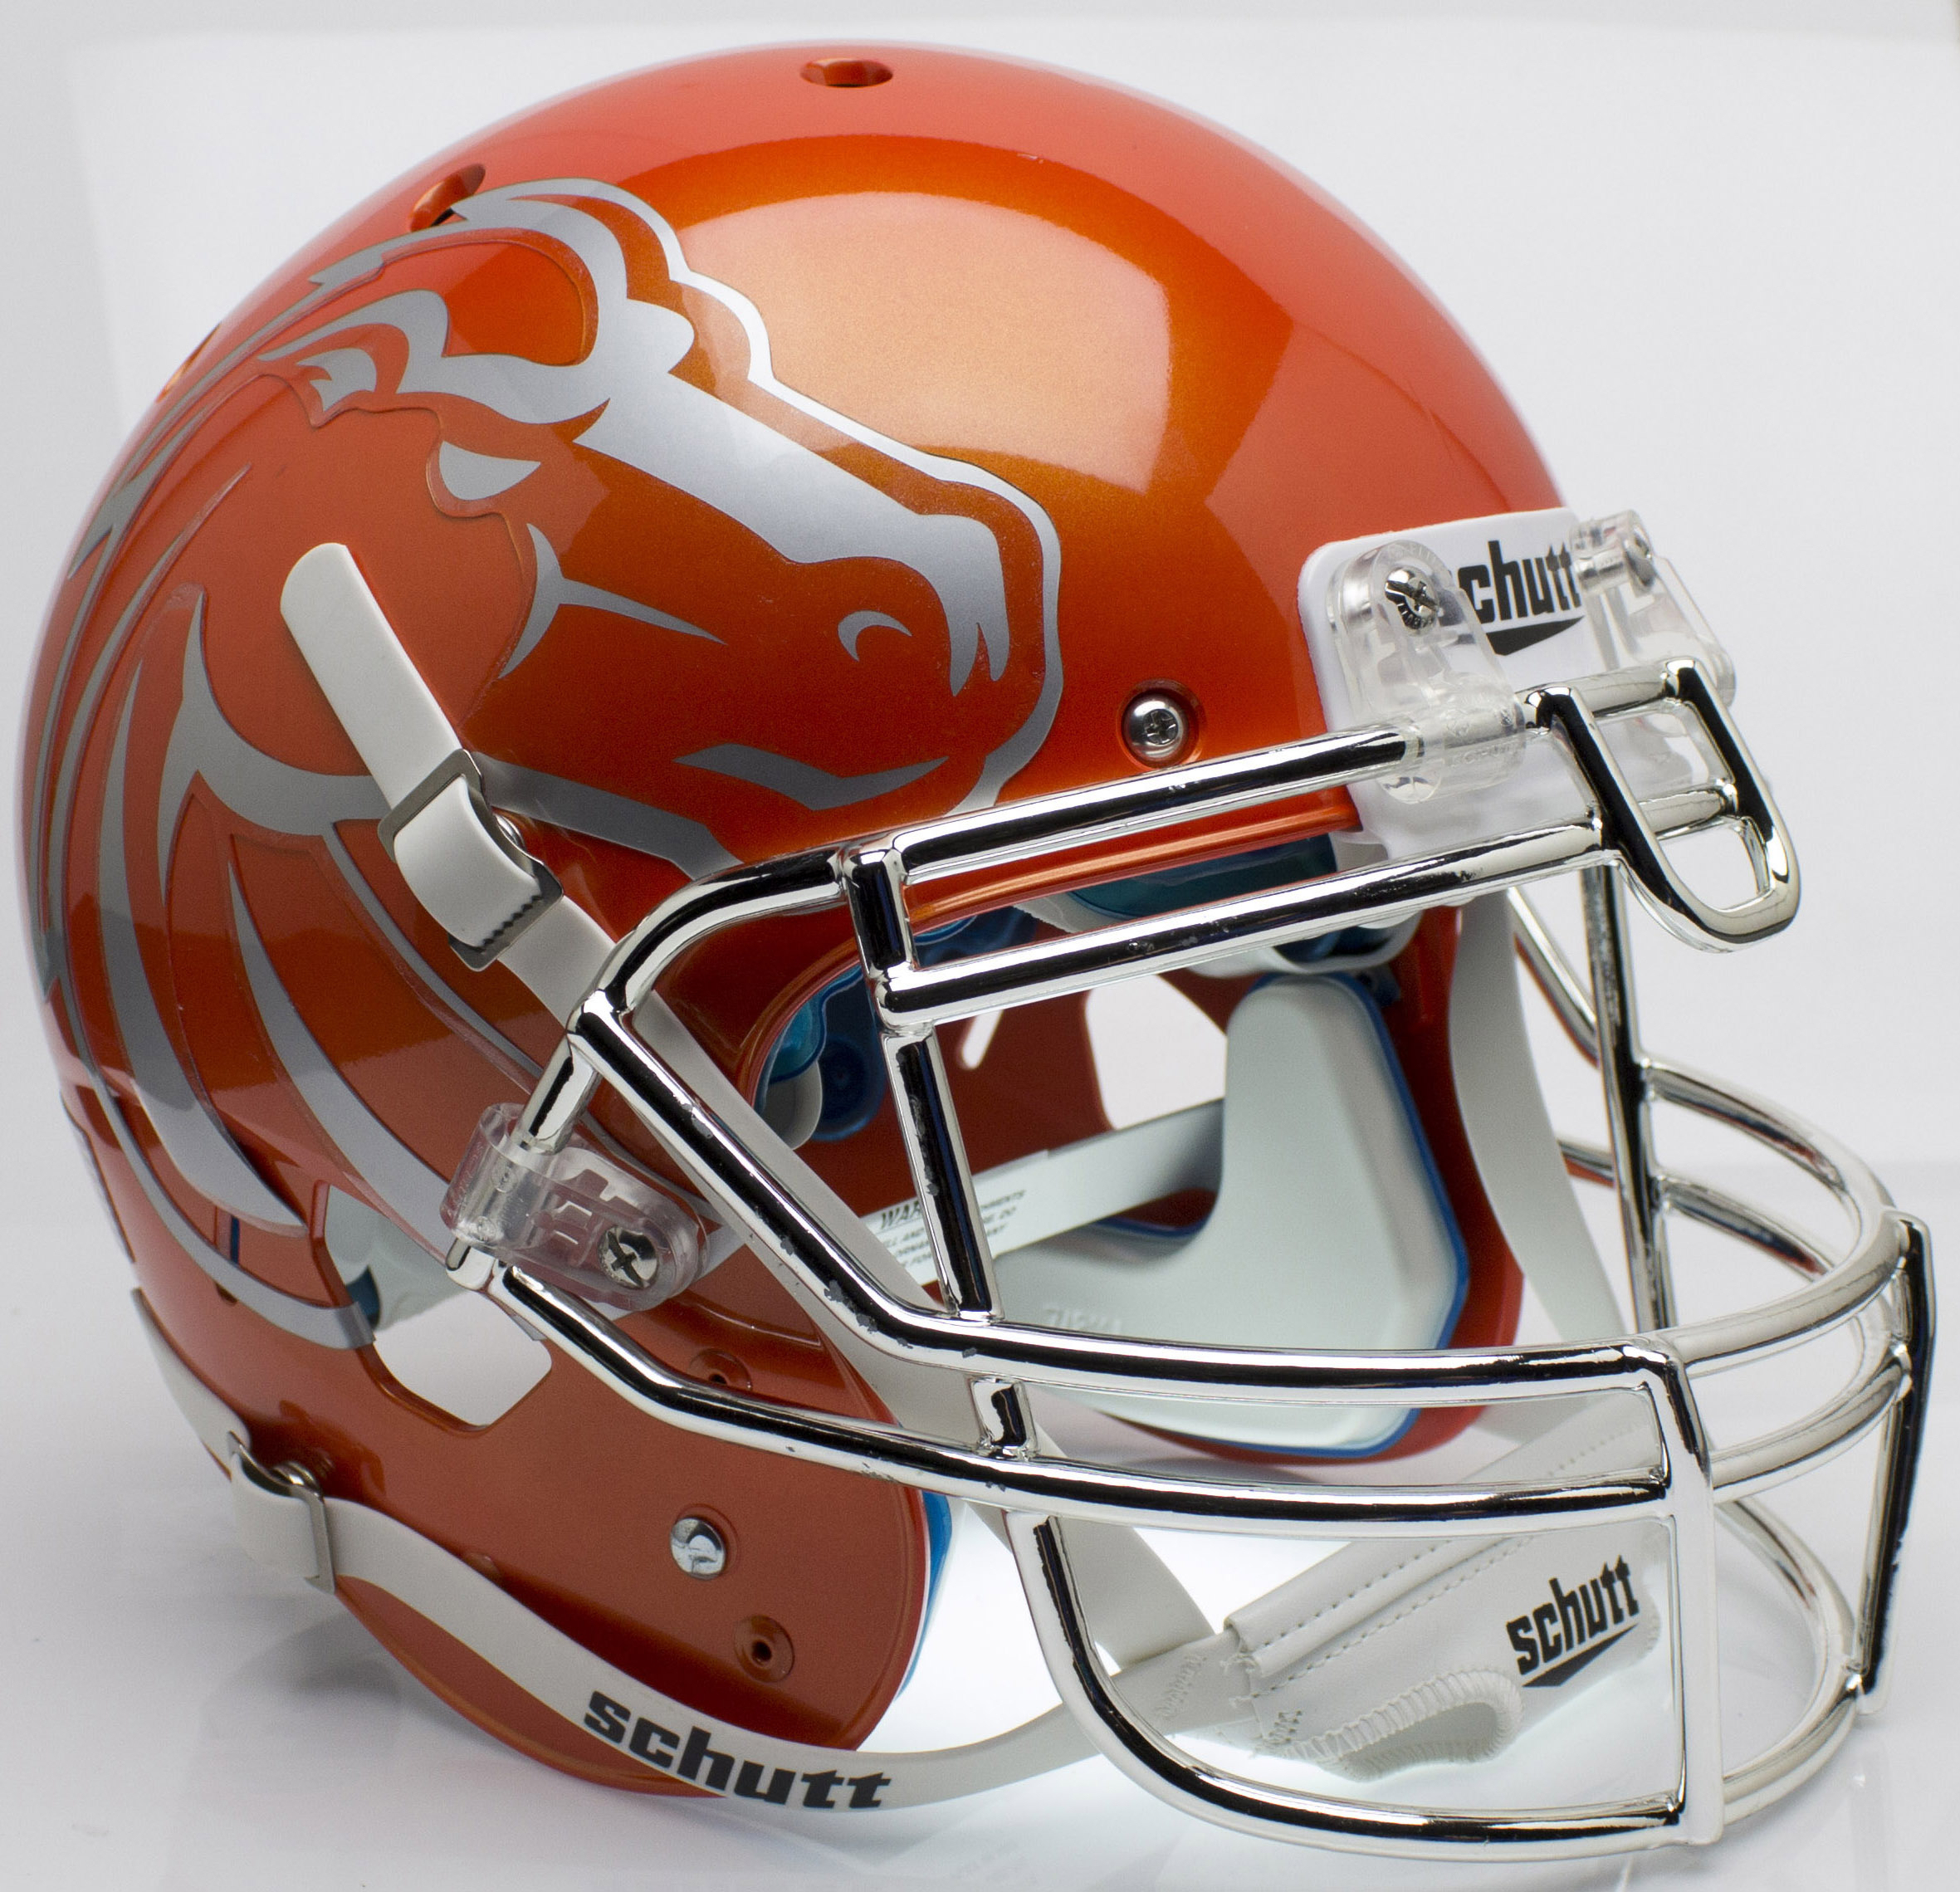 Boise State Broncos Authentic College XP Football Helmet Schutt <B>Orange with Chrome Mask</B>